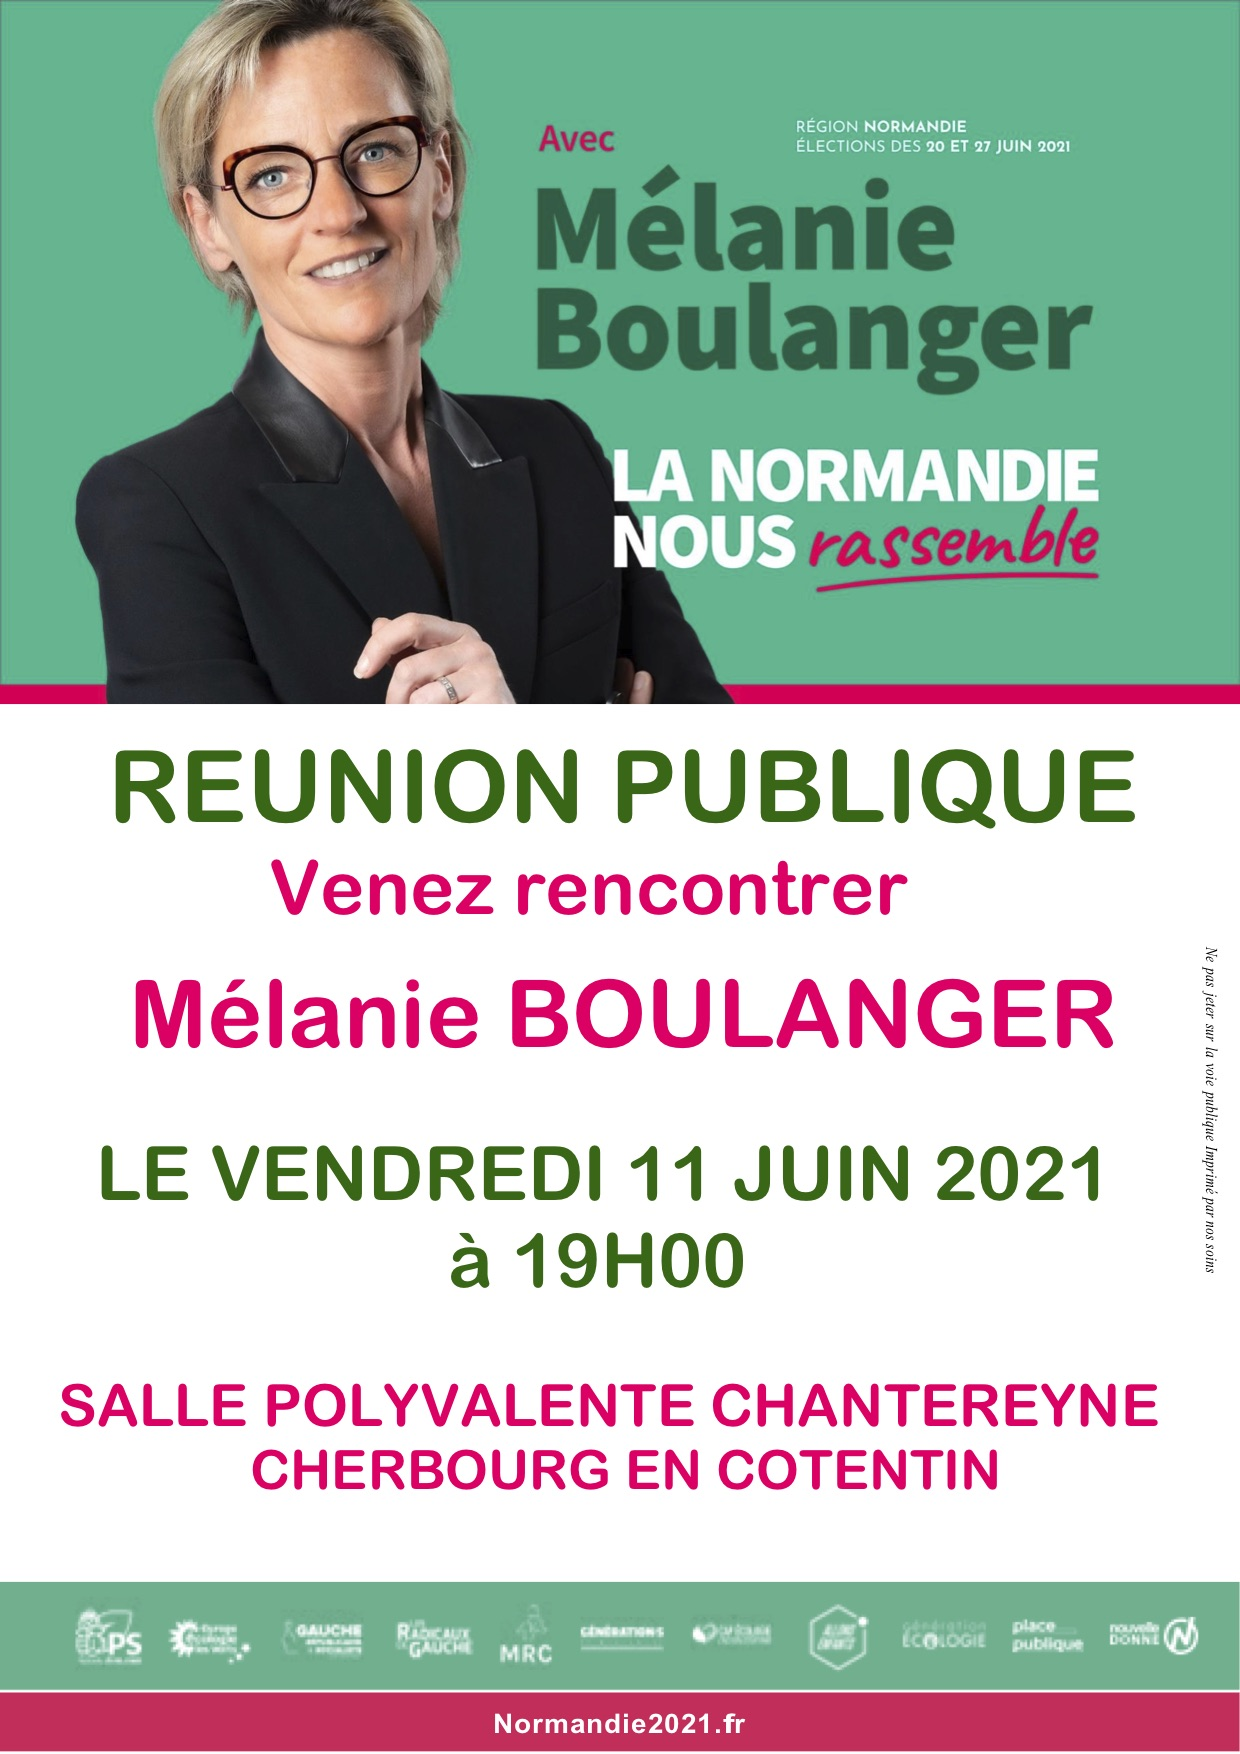 meeting cherbourg